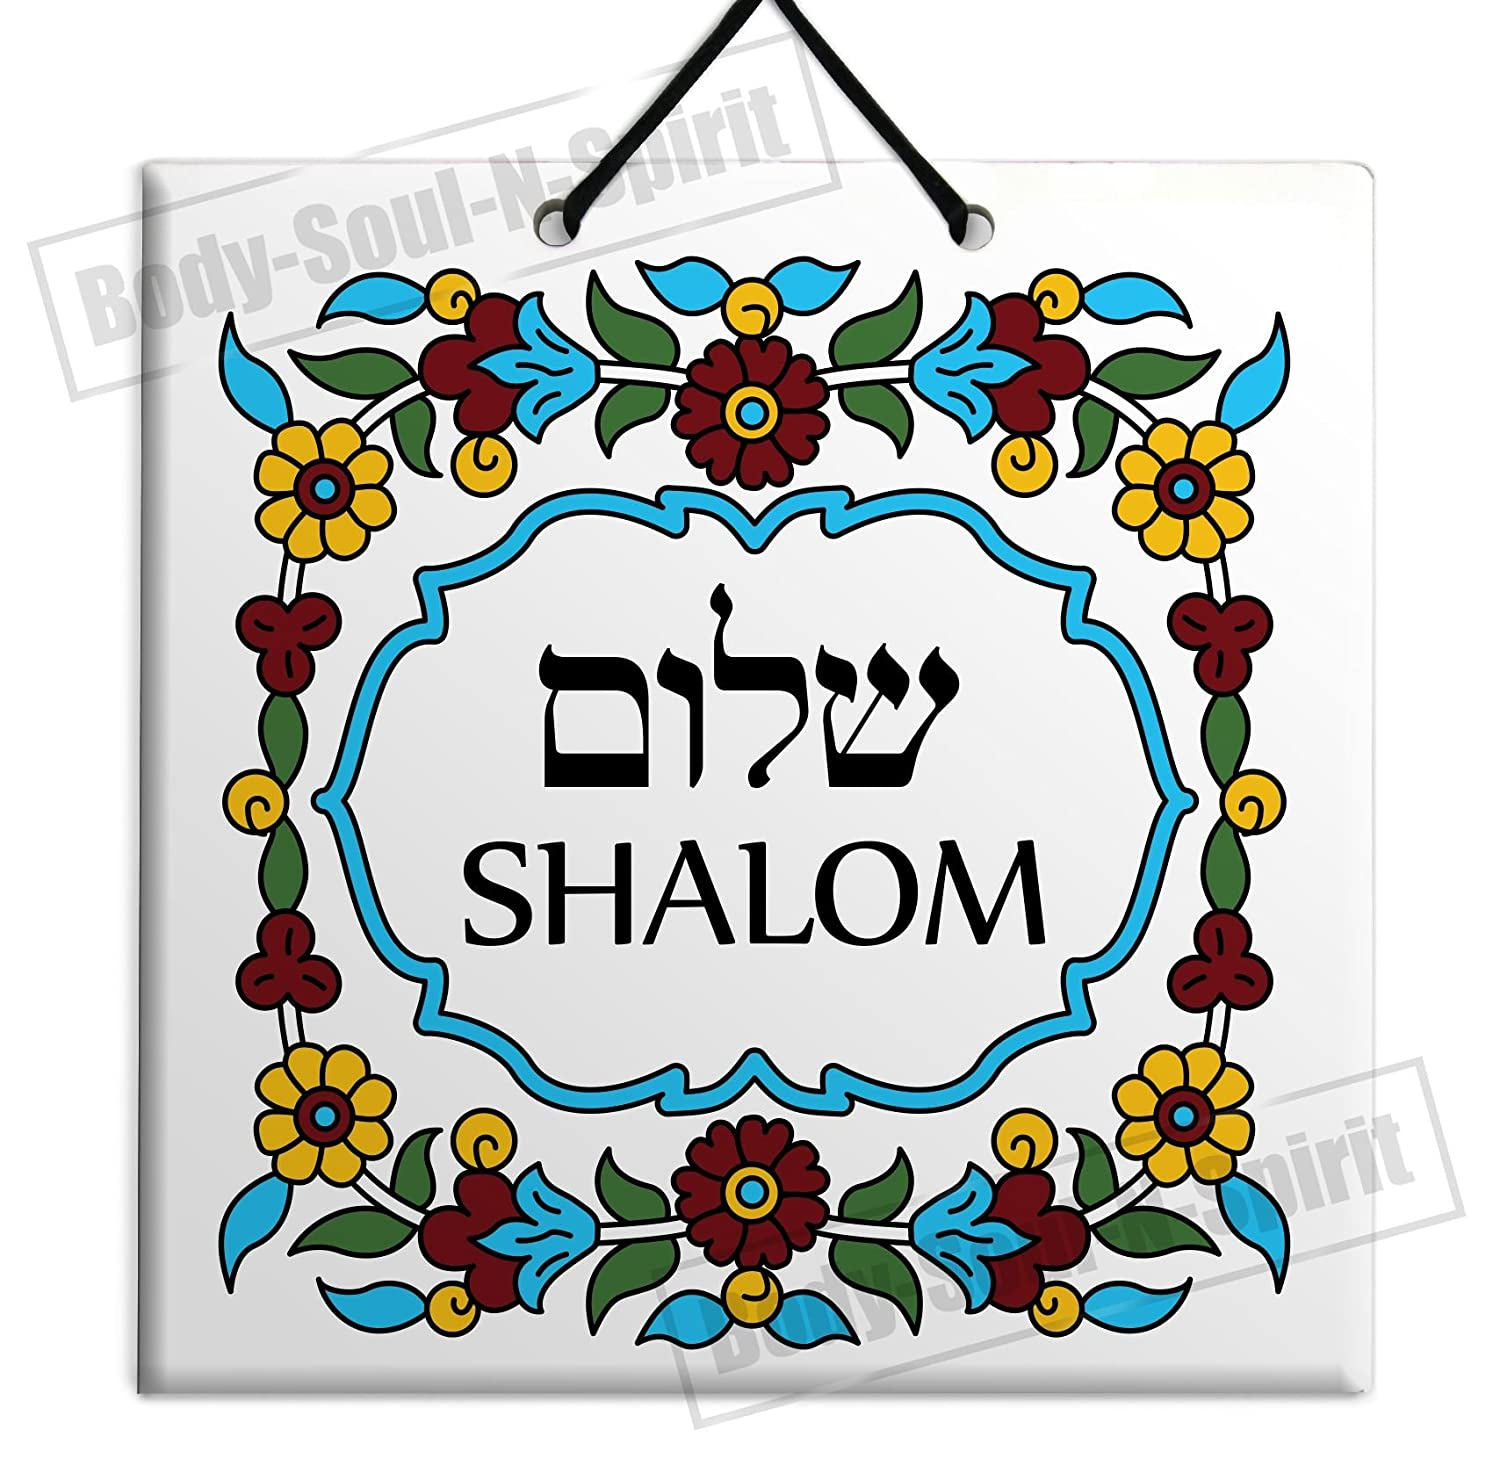 Amazon shalom ceramic tile israel 15x15 cm jewish vintage amazon shalom ceramic tile israel 15x15 cm jewish vintage pottery floral style judaica gift beauty dailygadgetfo Gallery